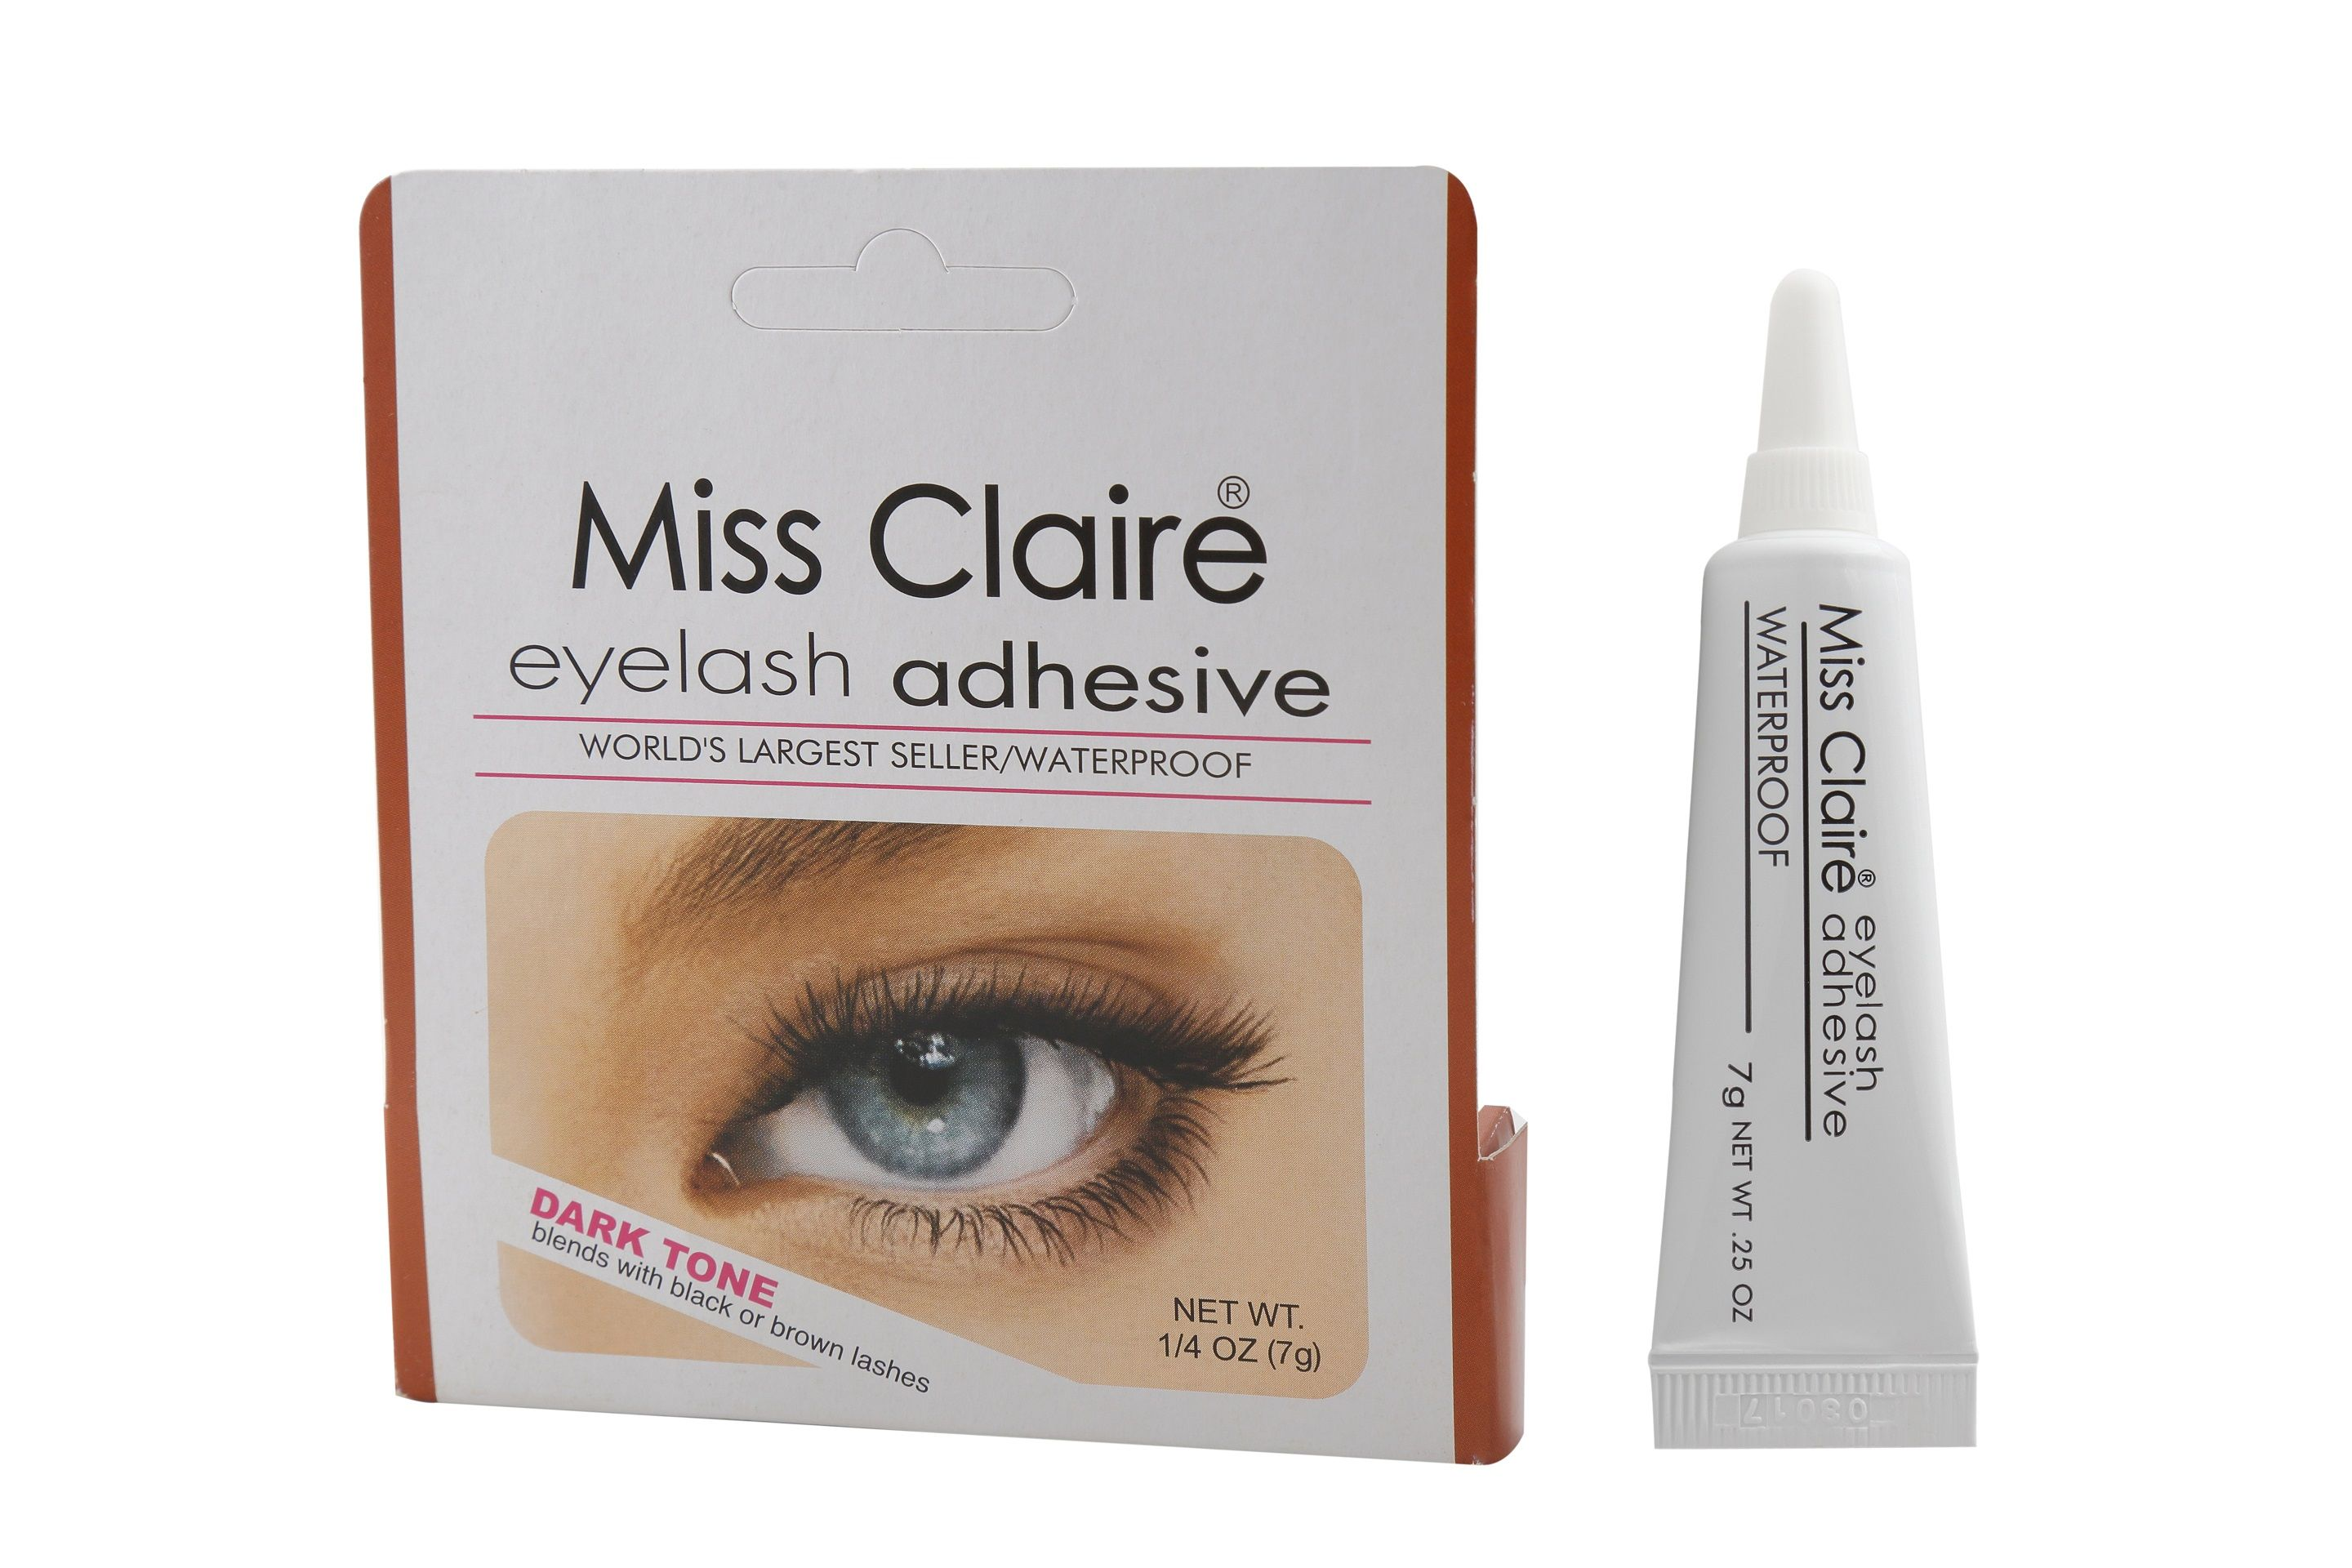 c62296e48dd Miss Claire Eyelash Glue Adhesive Dark Tone at Nykaa.com